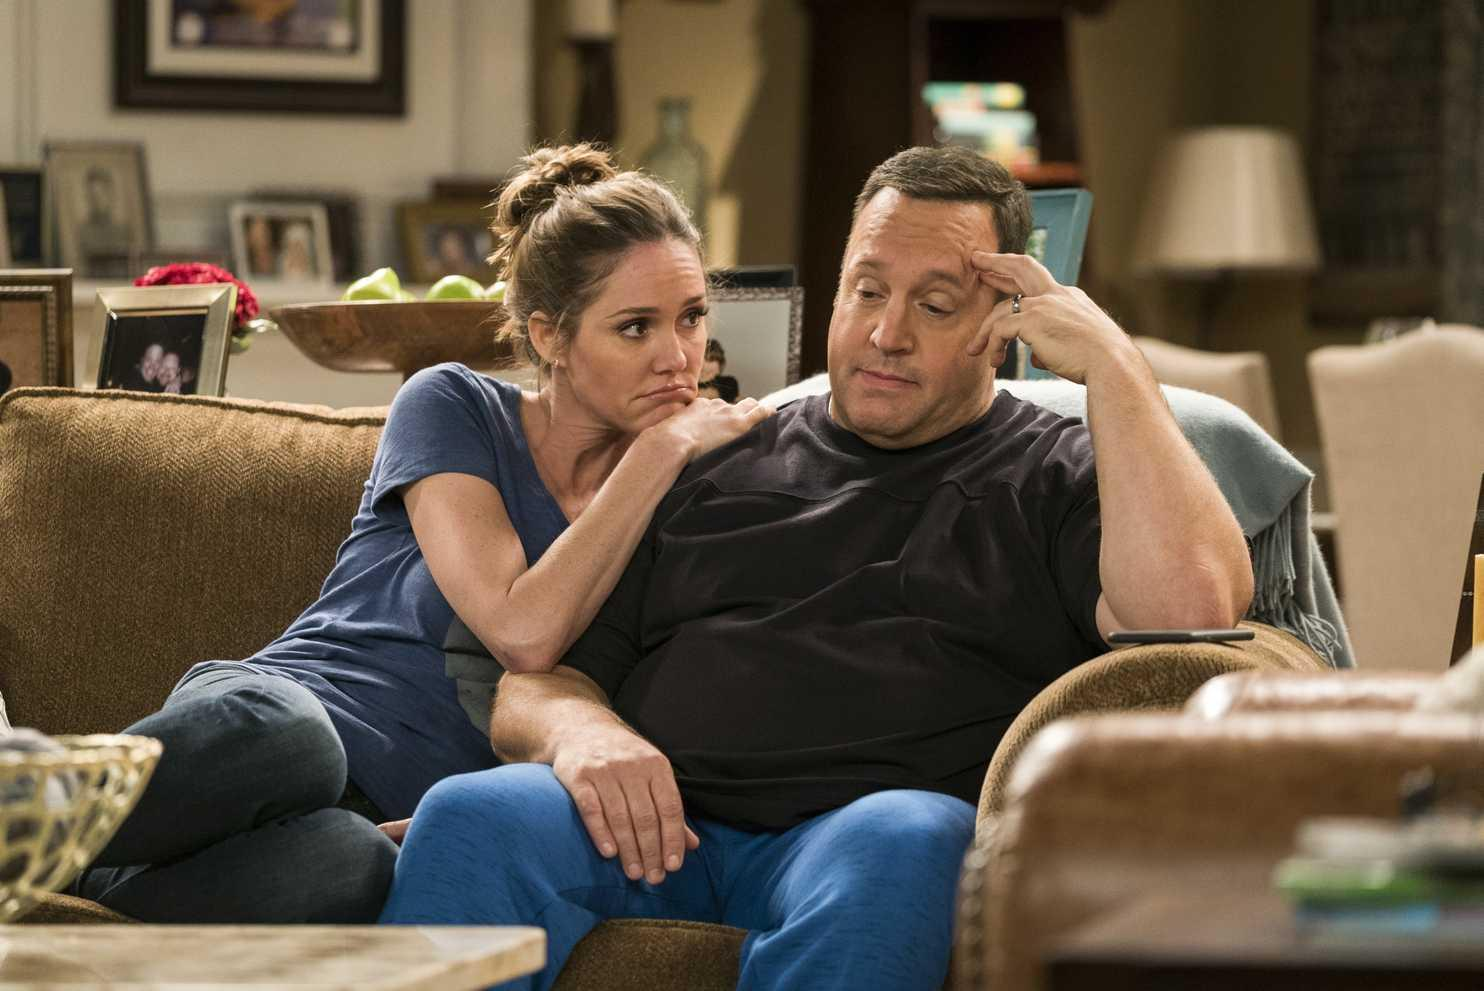 'Kevin Can Wait' executive producer defends decision to kill off character